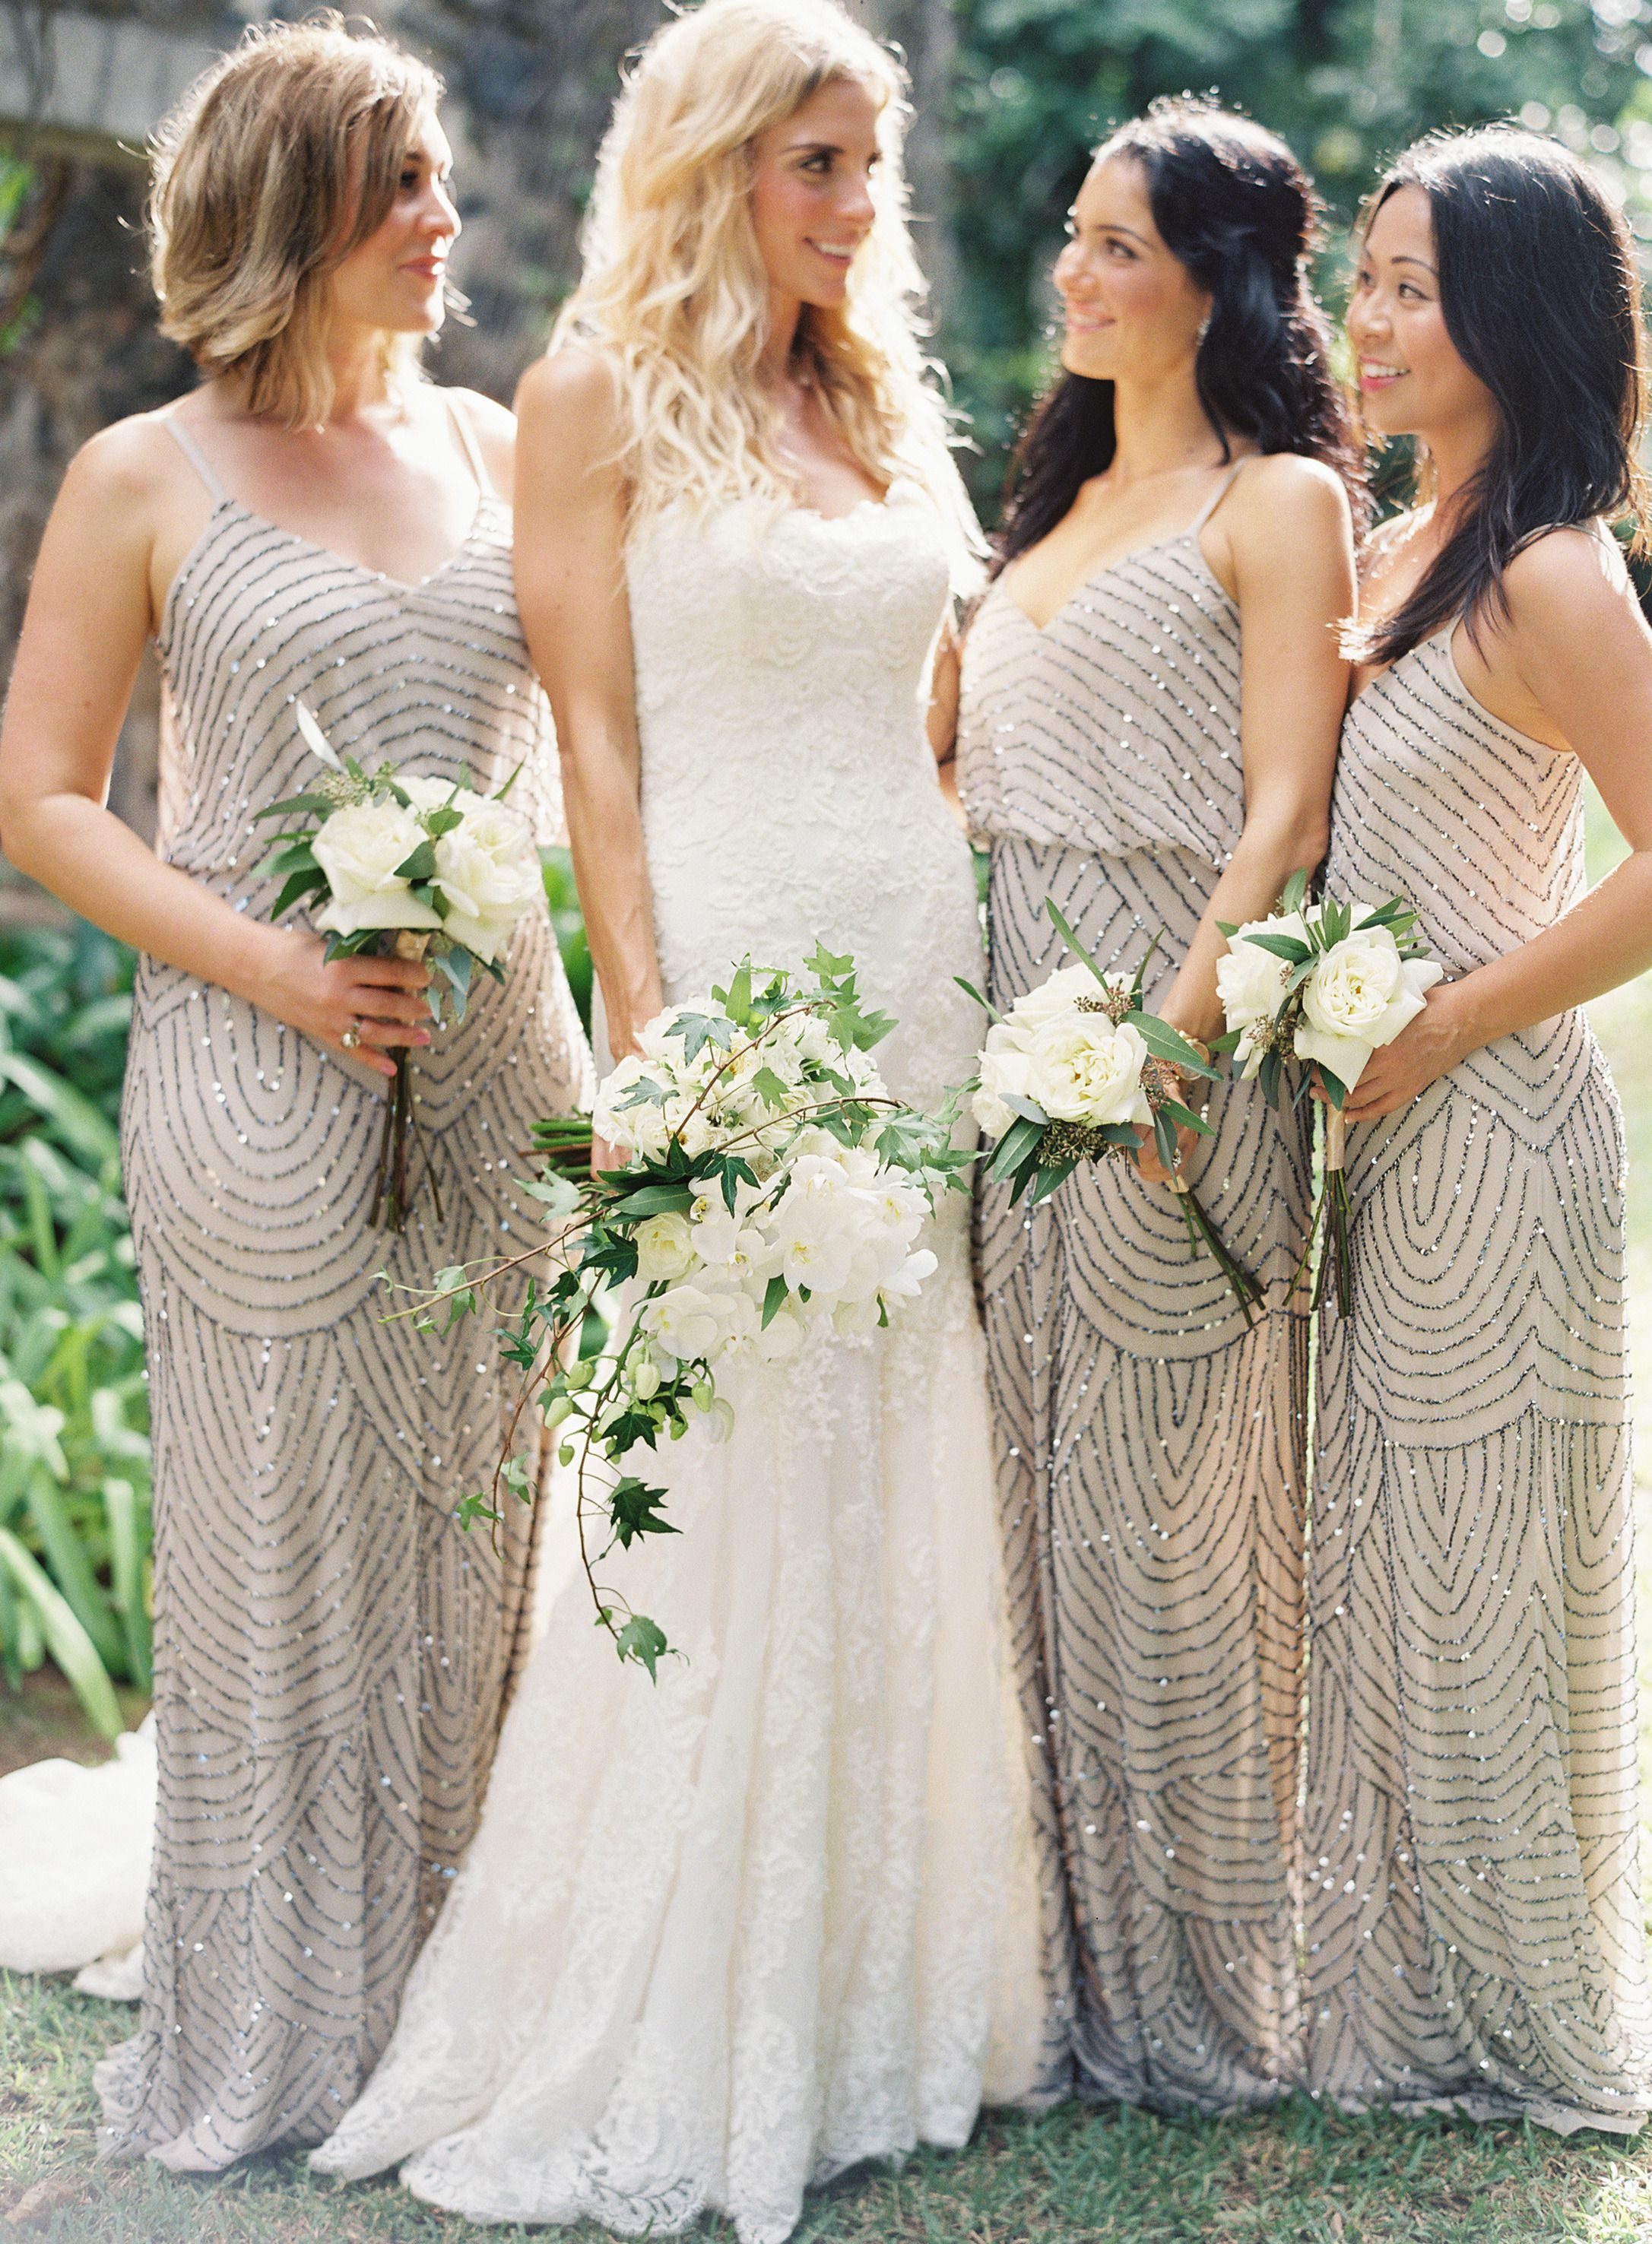 Destination glam haiku mill wedding adrianna papell photography destination glam haiku mill wedding sparkly bridesmaid dressgold ombrellifo Image collections